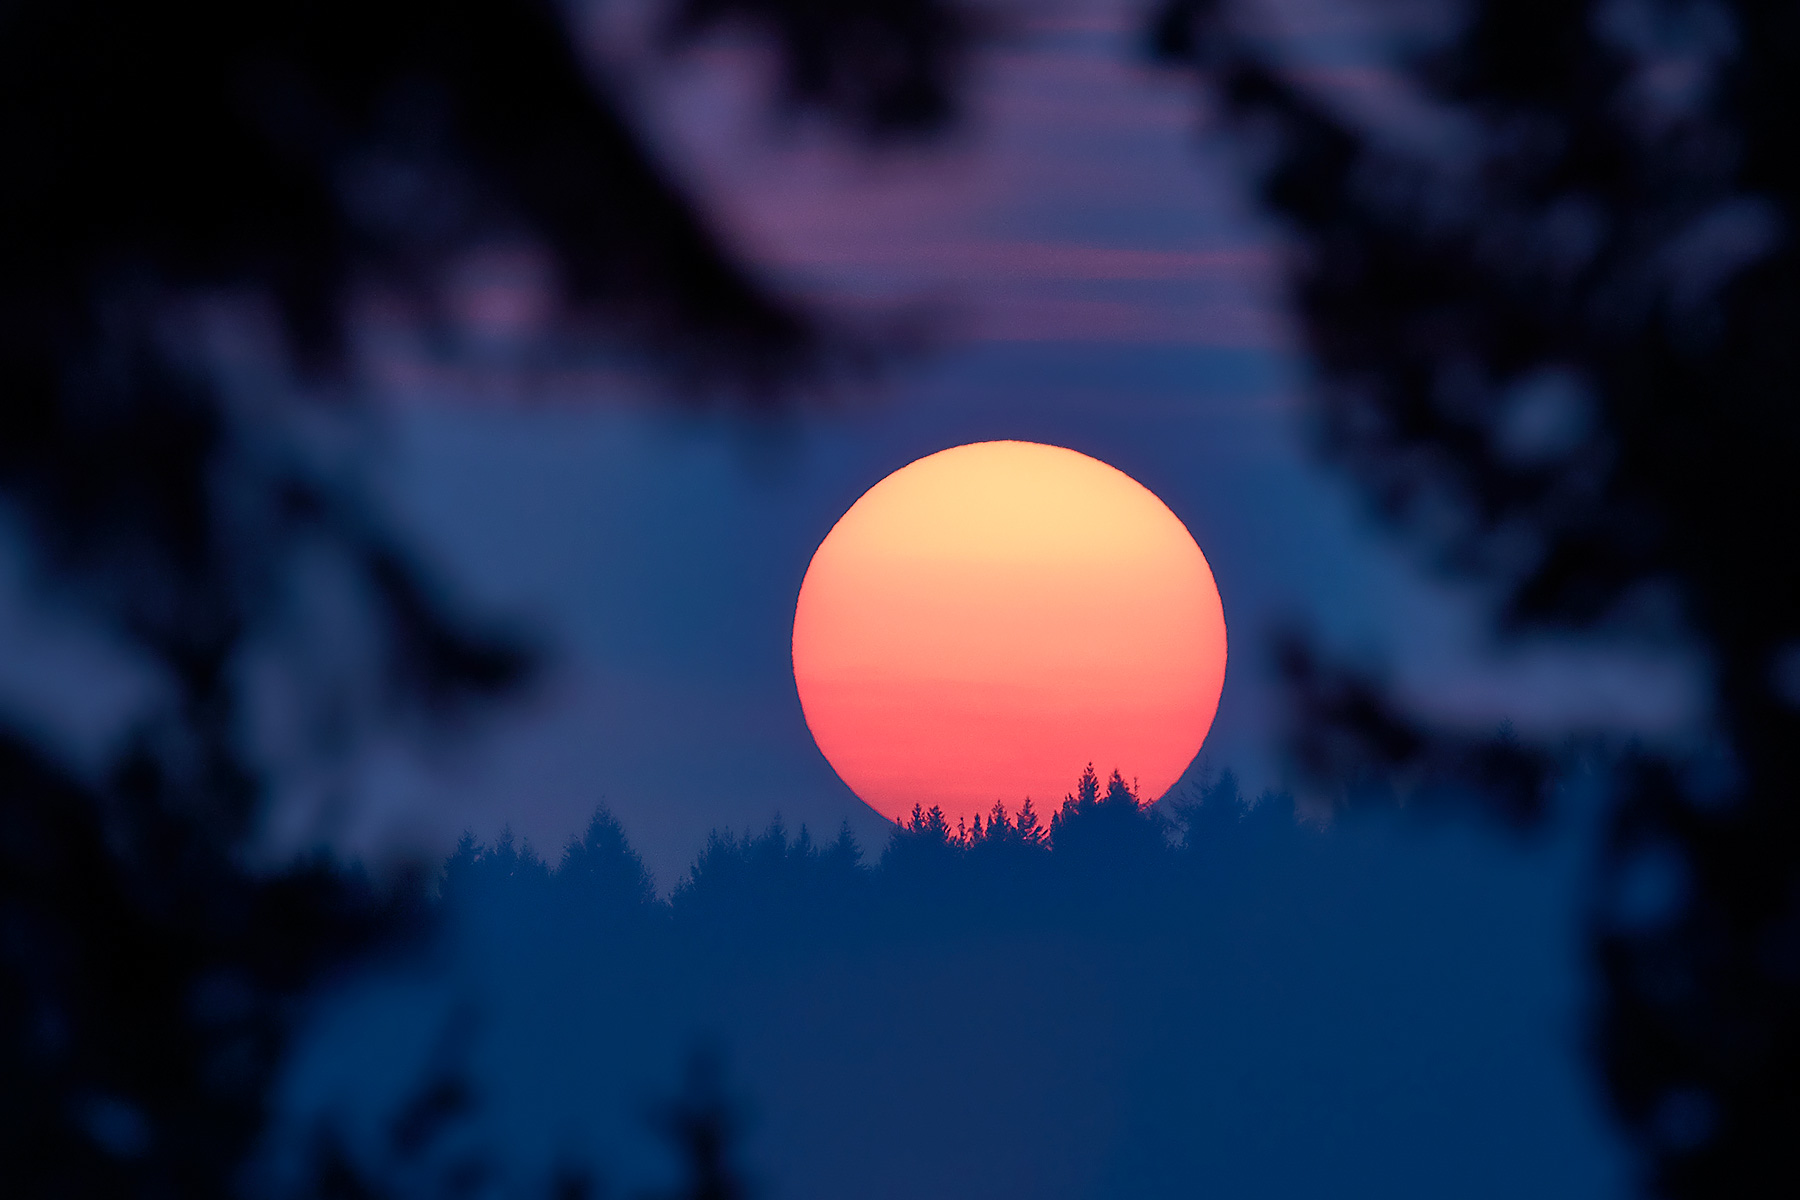 Wildfire Sunset on Salt Spring Island ©johncameron.ca